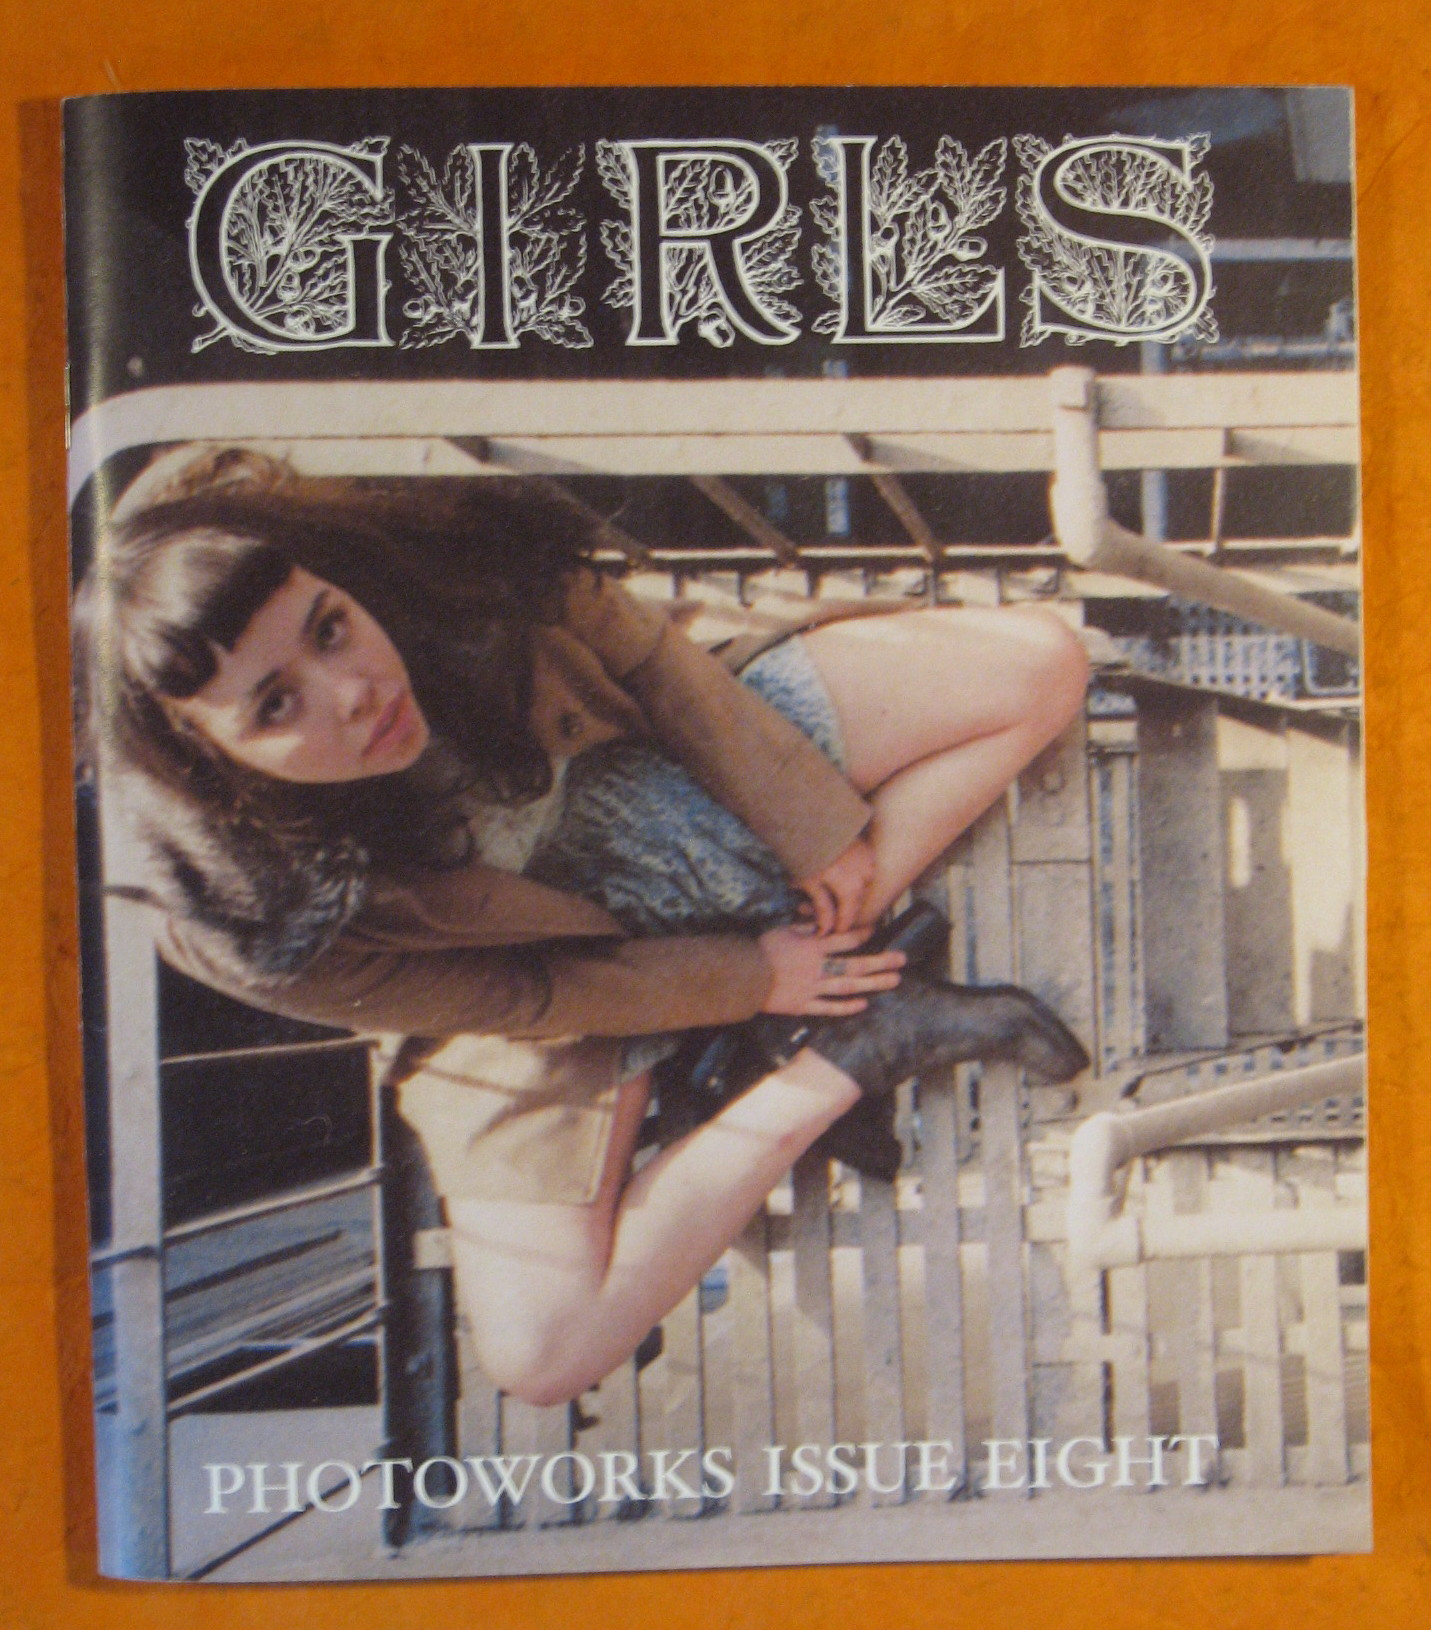 Girls (Photoworks Issue Eight), Schuster, Hannah Louise; Haley, Hana